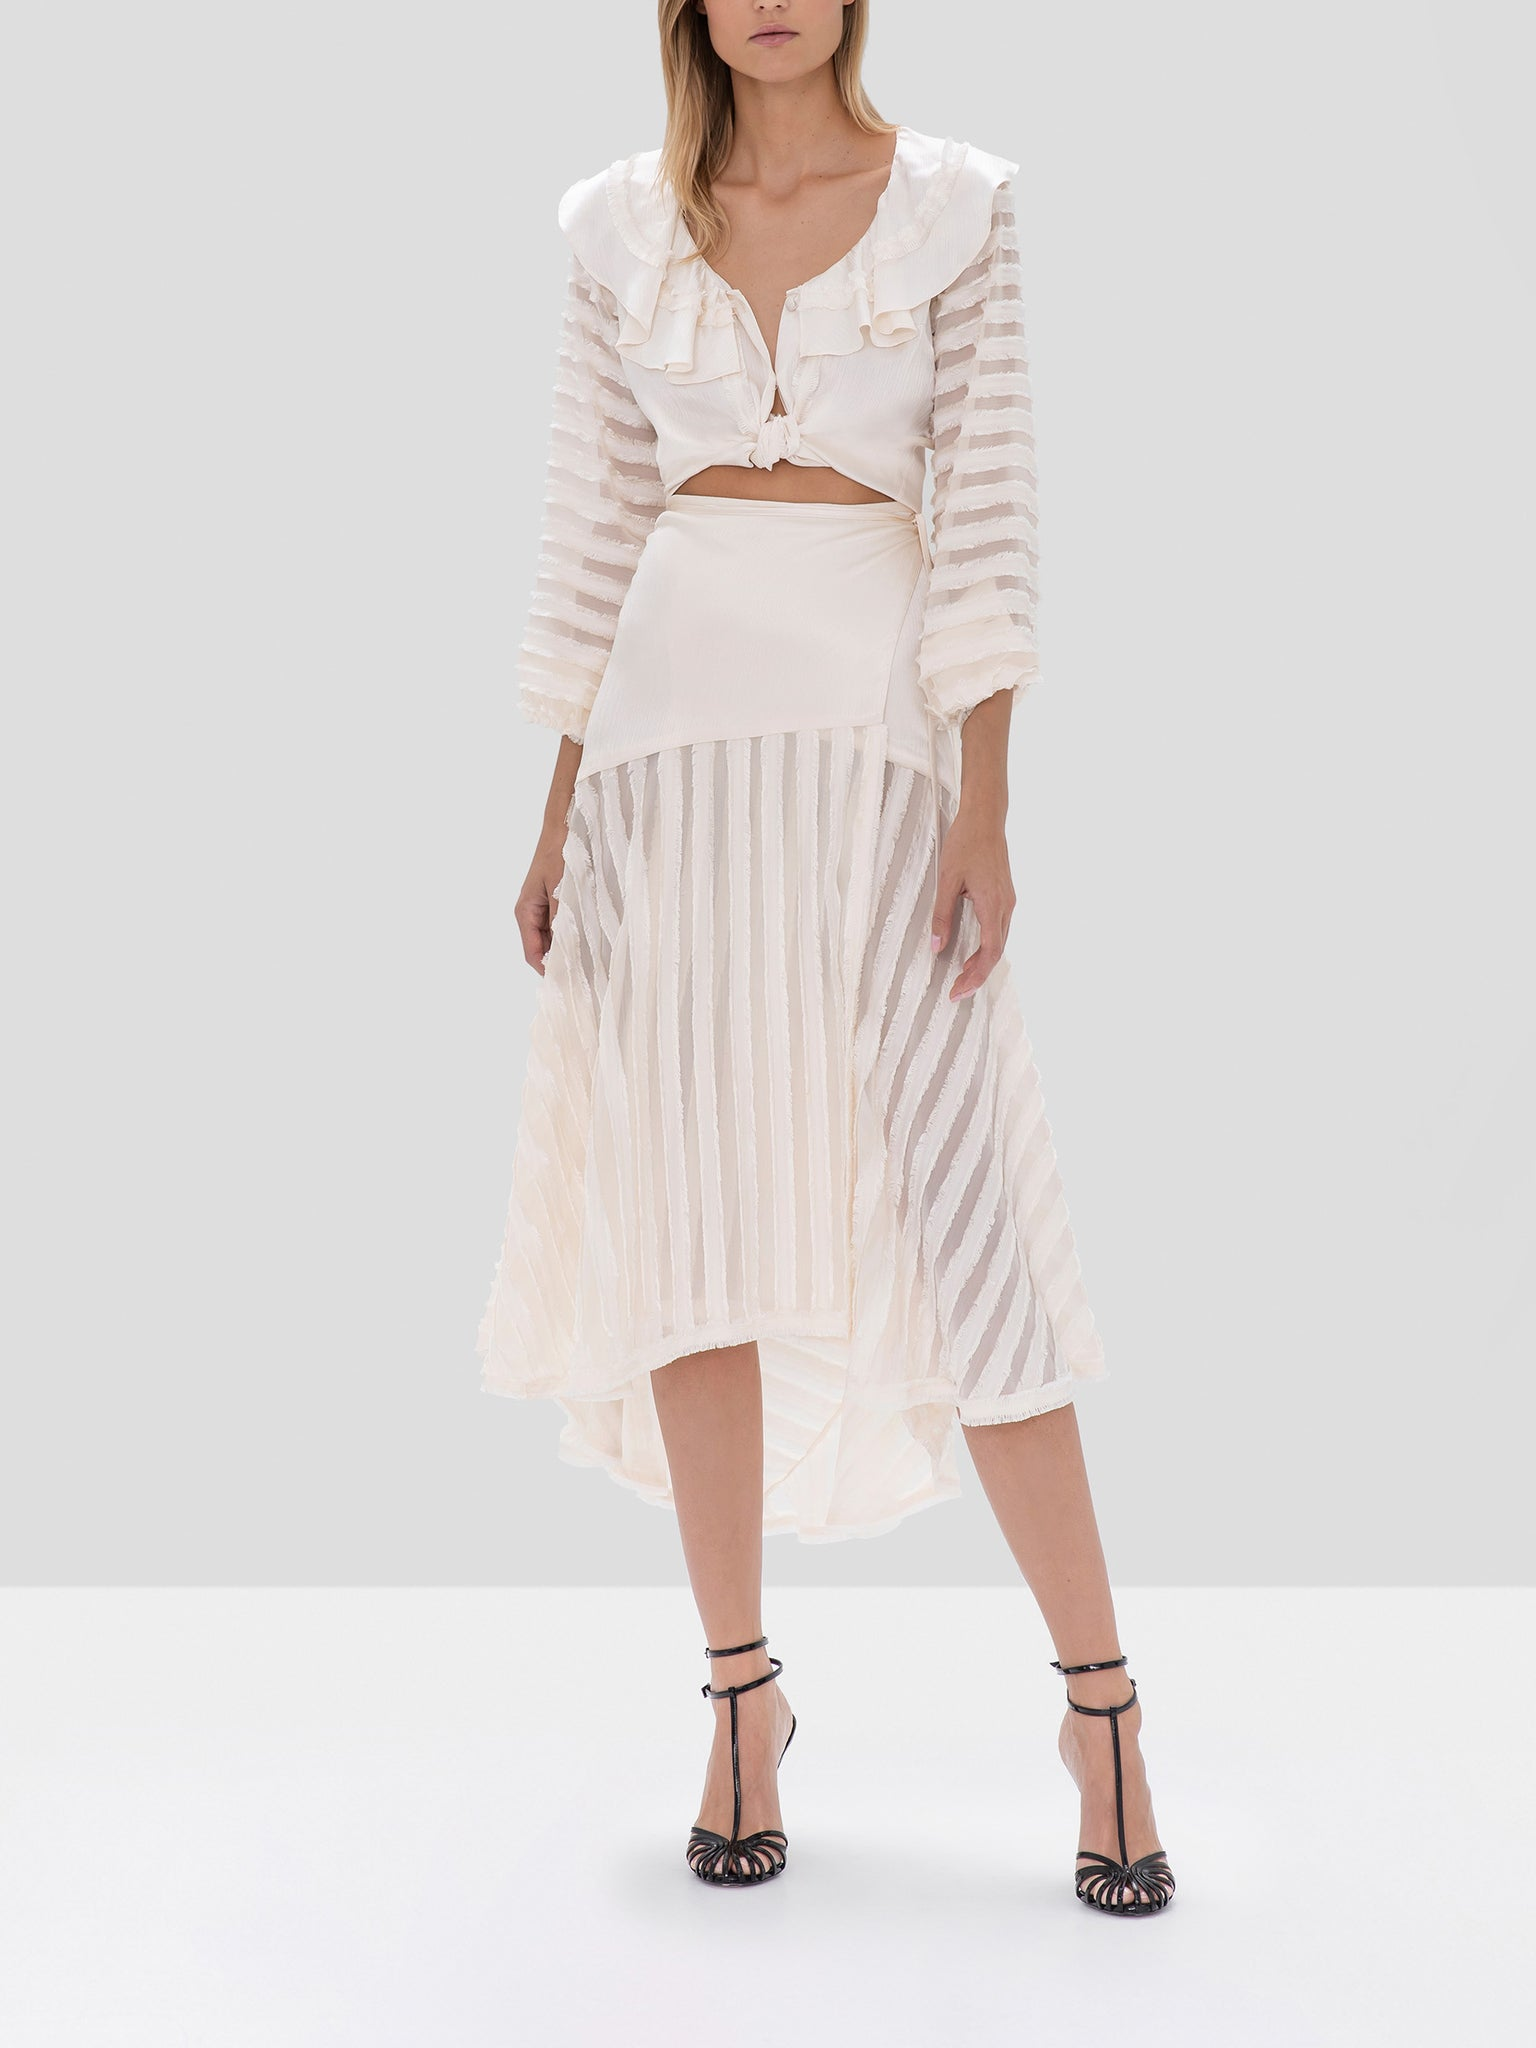 Alexis Melata Top and Danos Skirt in Off White from the Fall Winter 2019 Ready To Wear Collection